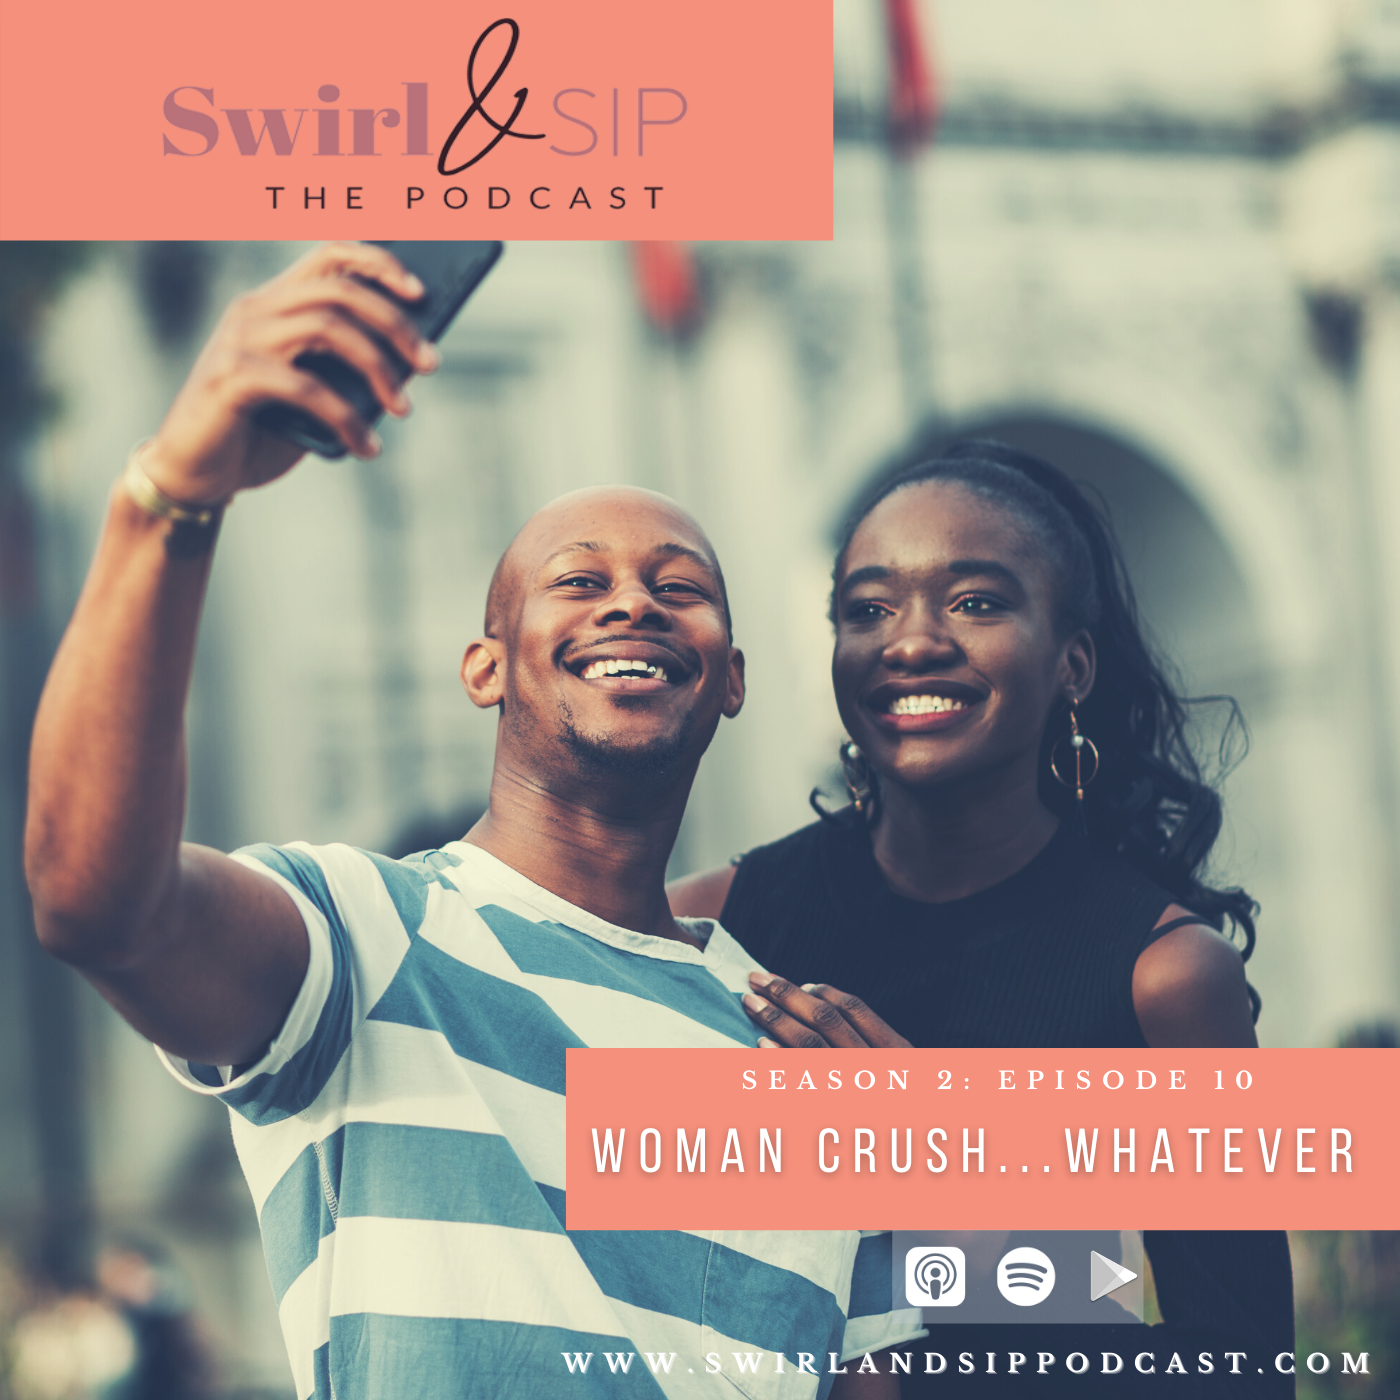 Man and Woman Taking Selfie - EP 210 Woman Crush Whatever